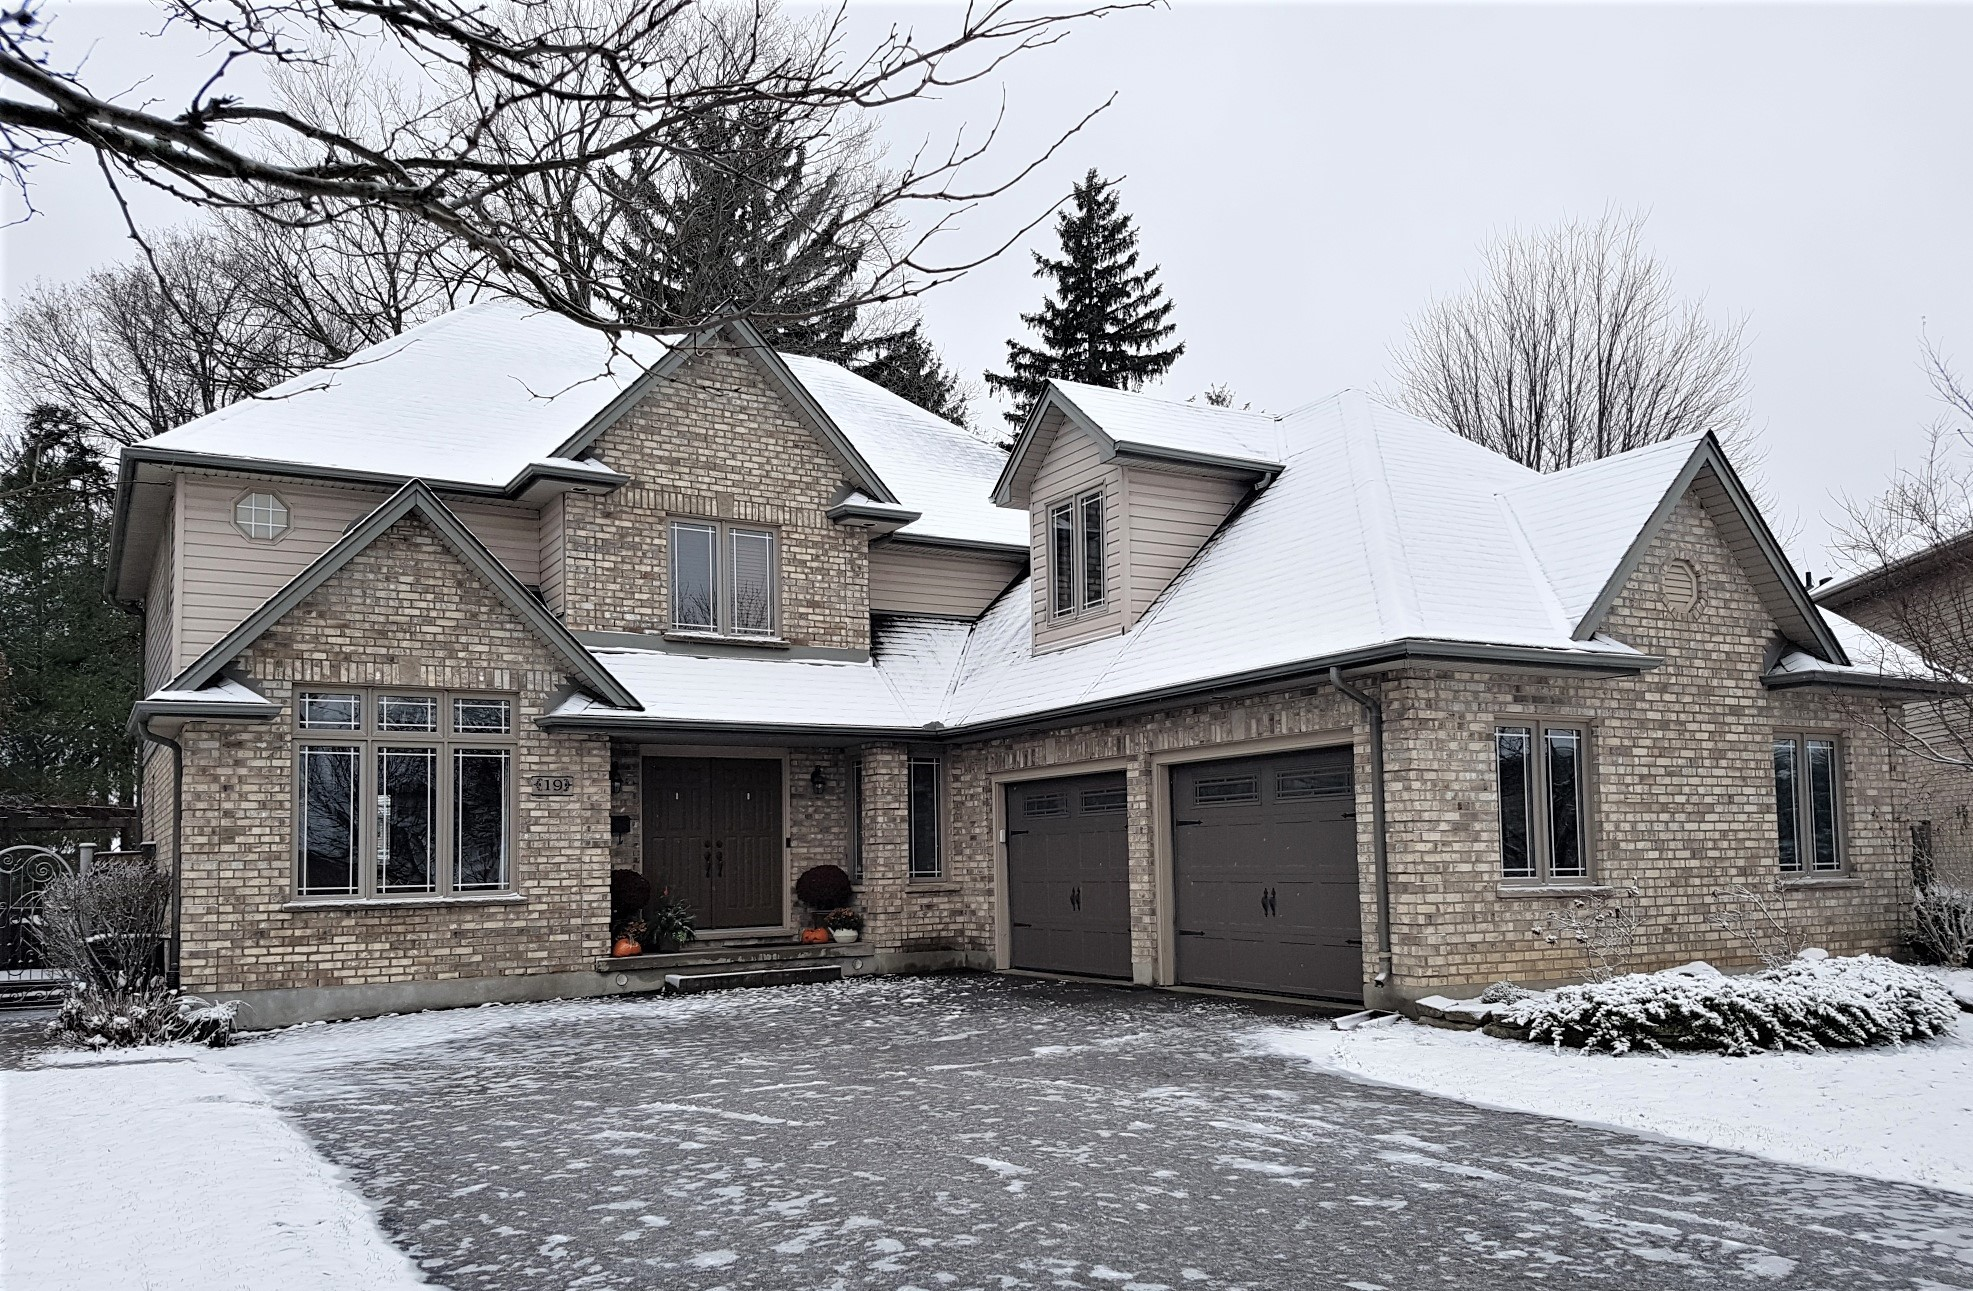 <h3>$742,900</h3><p>19 Farmhouse Court, London, Ontario</p>